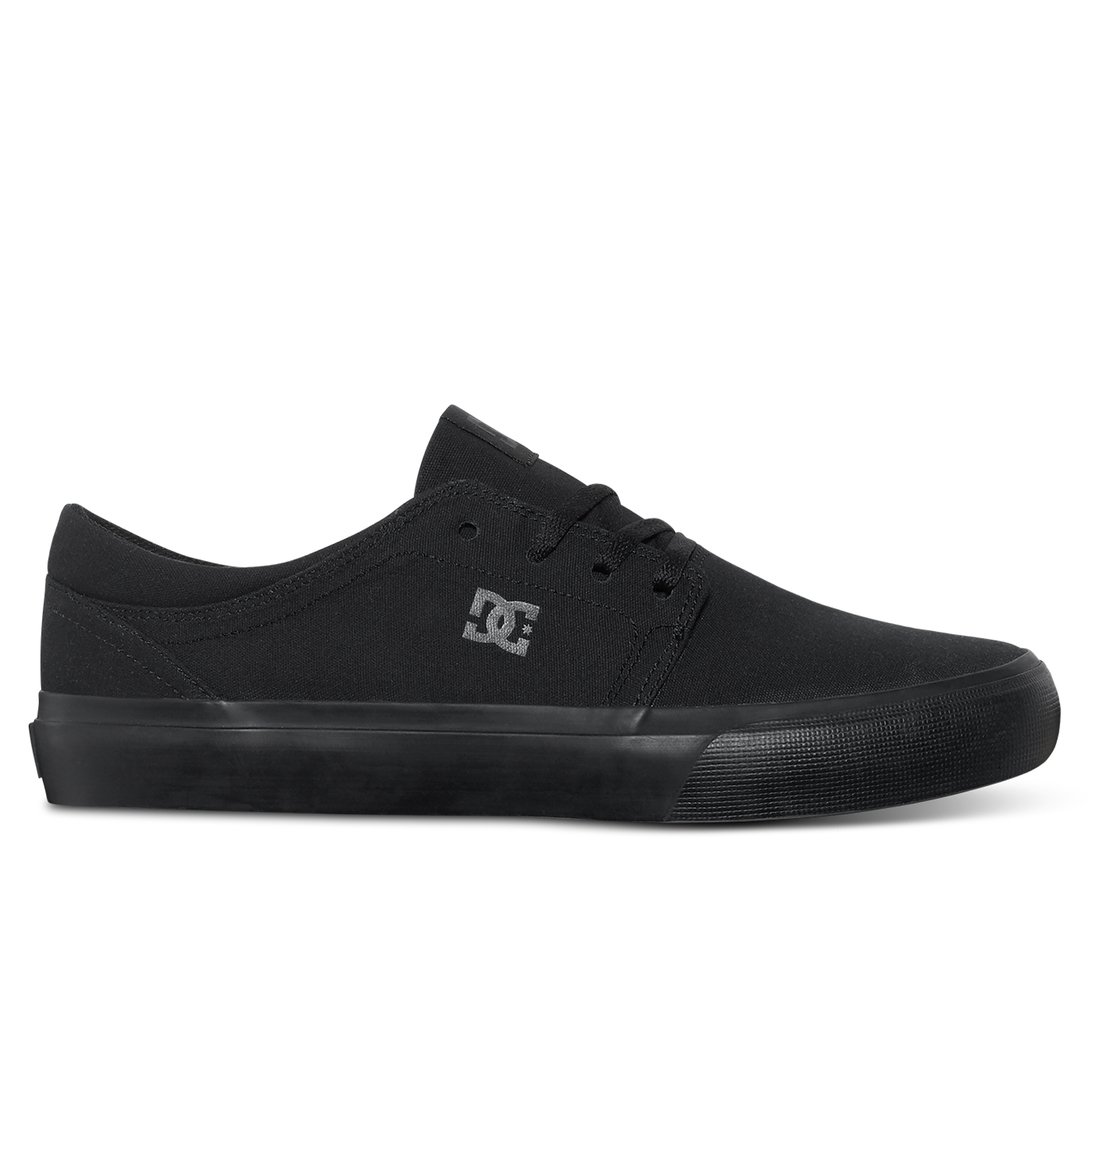 dc shoes Trase TX - Scarpe da Uomo - Gray - DC Shoes KSE2WbTsY